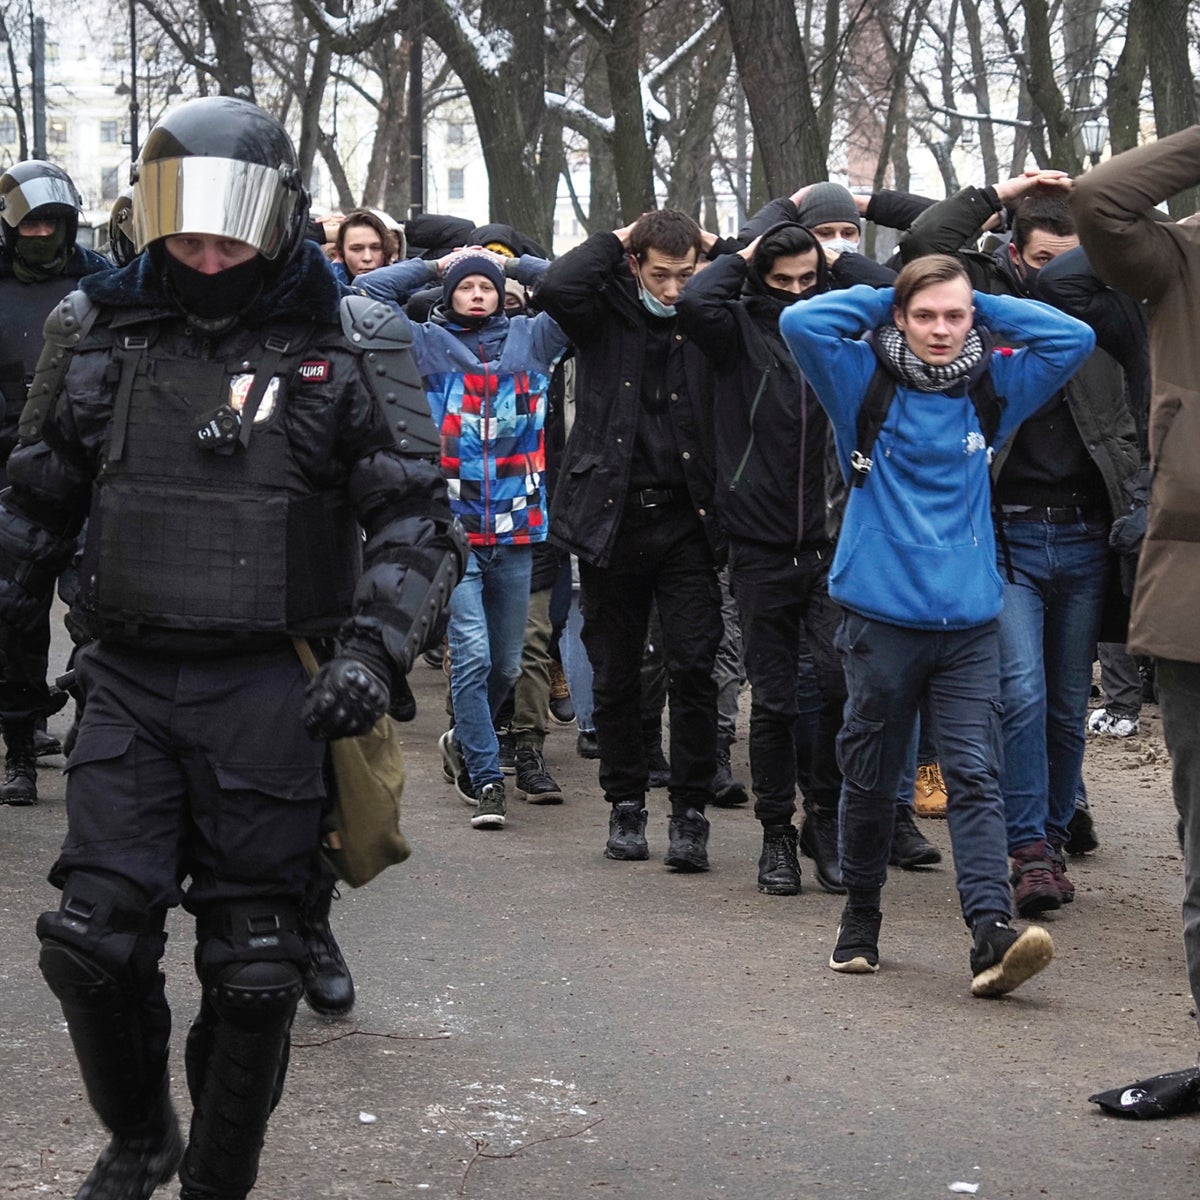 The January 31 protest in Moscow against the imprisonment of opposition leader Alexei Navalny.